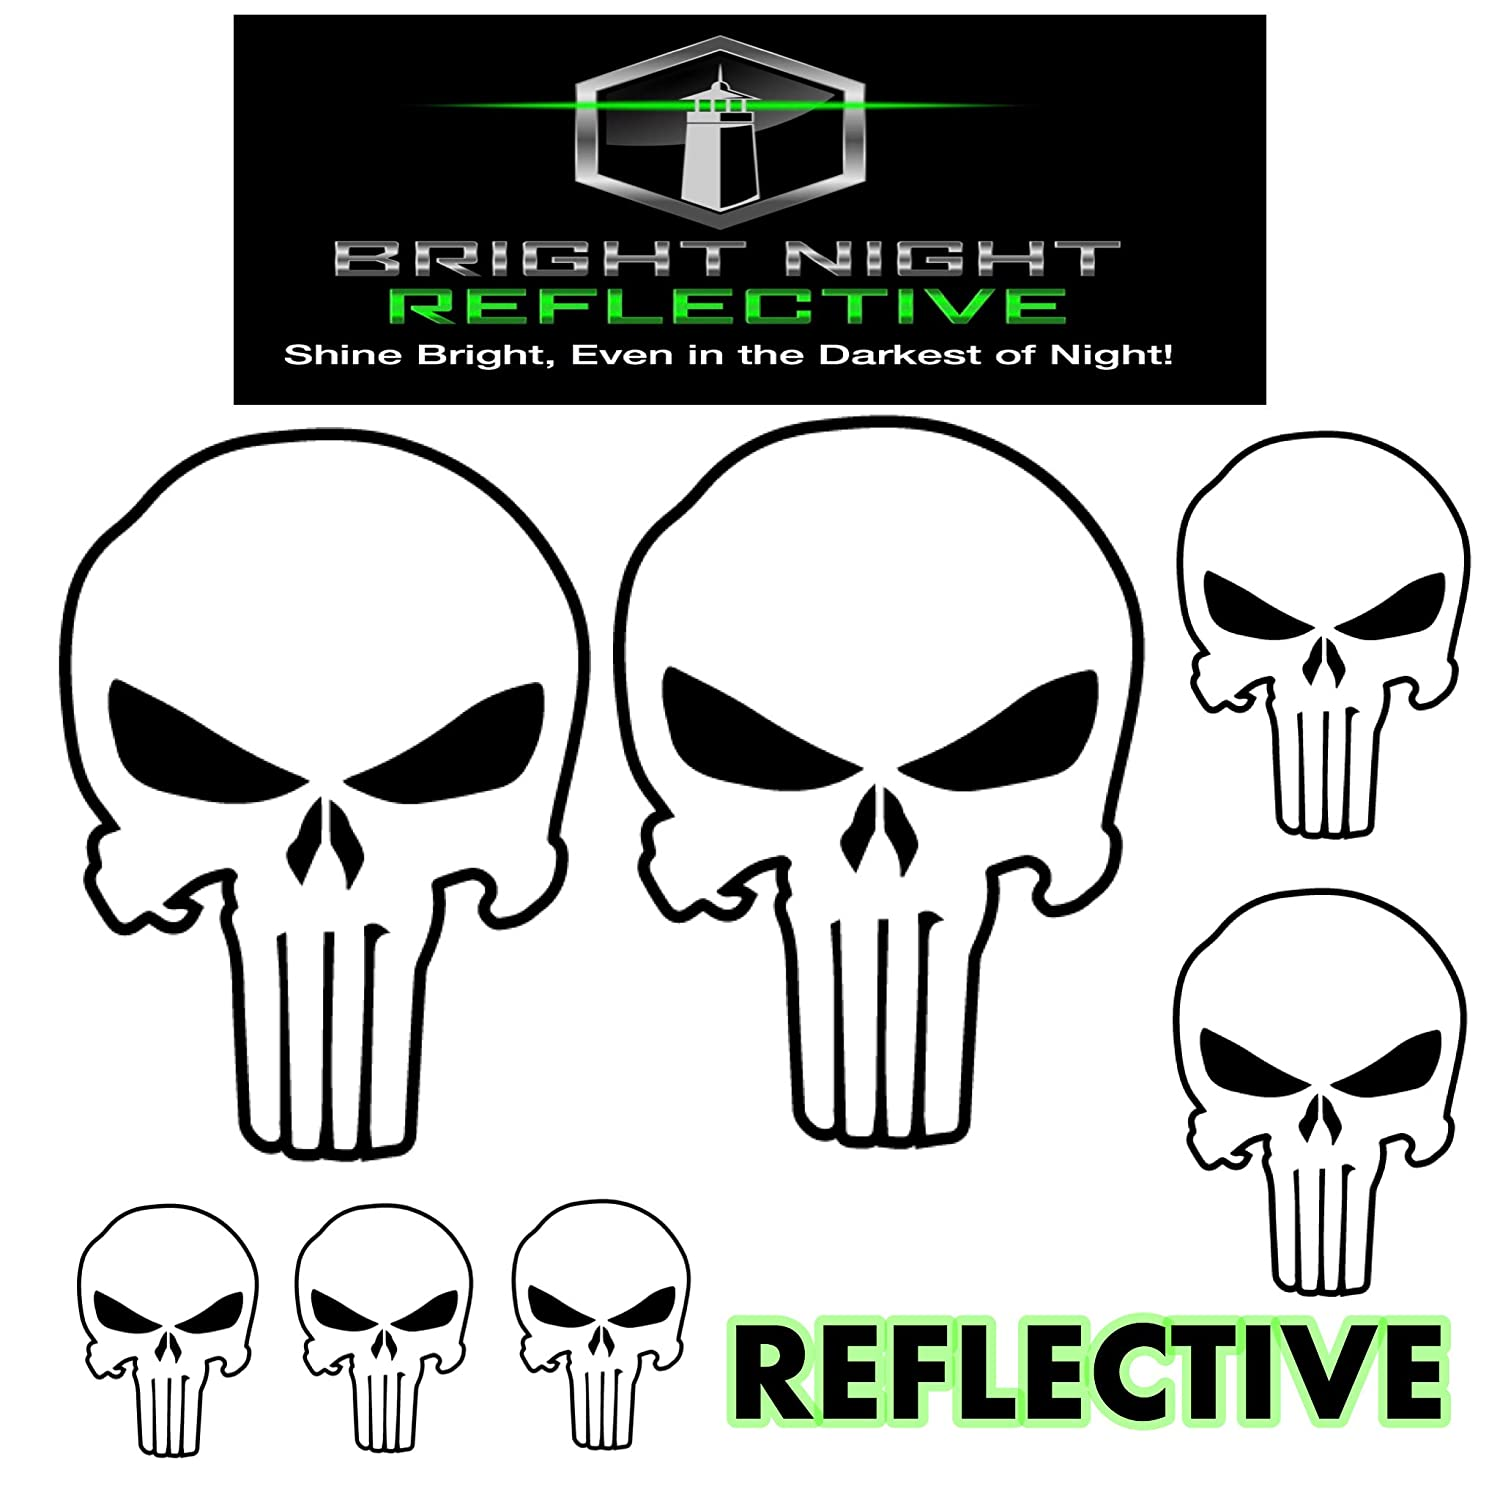 Two 2.25 x 3.25 plus 5 more! Punisher skull decal set for helmets motorcycles cars guns black reflective